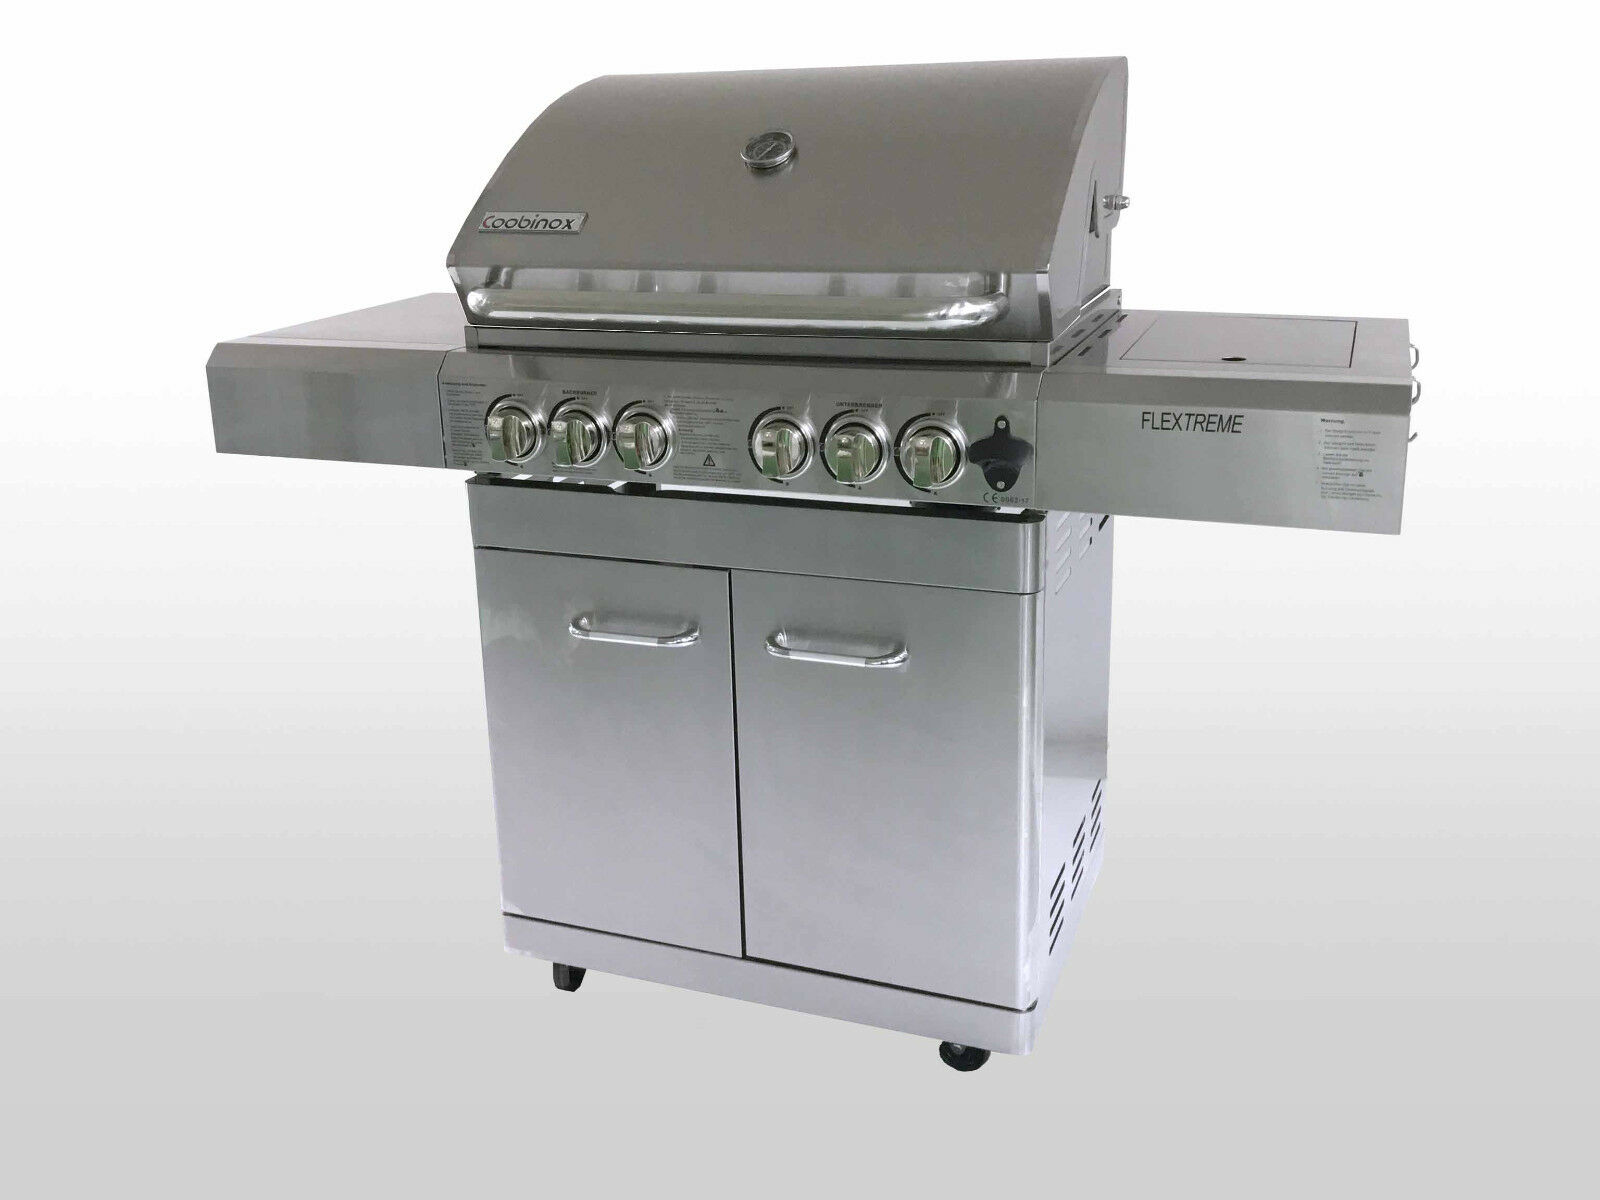 Enders Gasgrill Turbo Zone : Erfahrungsbericht enders kansas sikg turbo grillforum und bbq